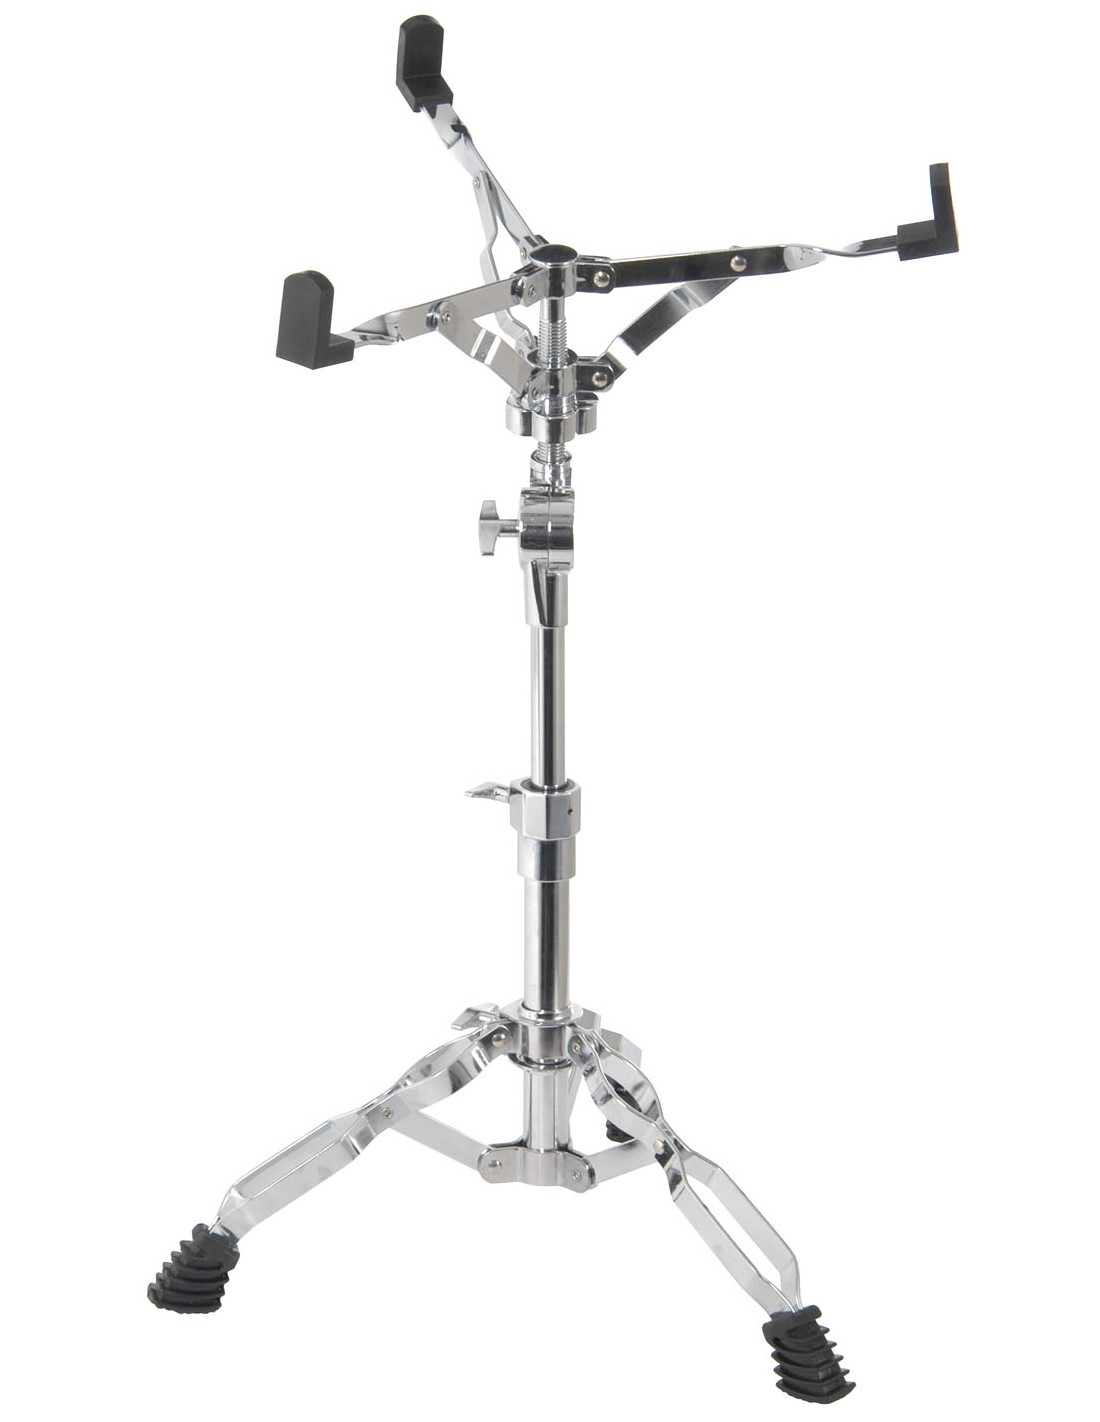 Chord Snst 1 Hd Snare Drum Stand